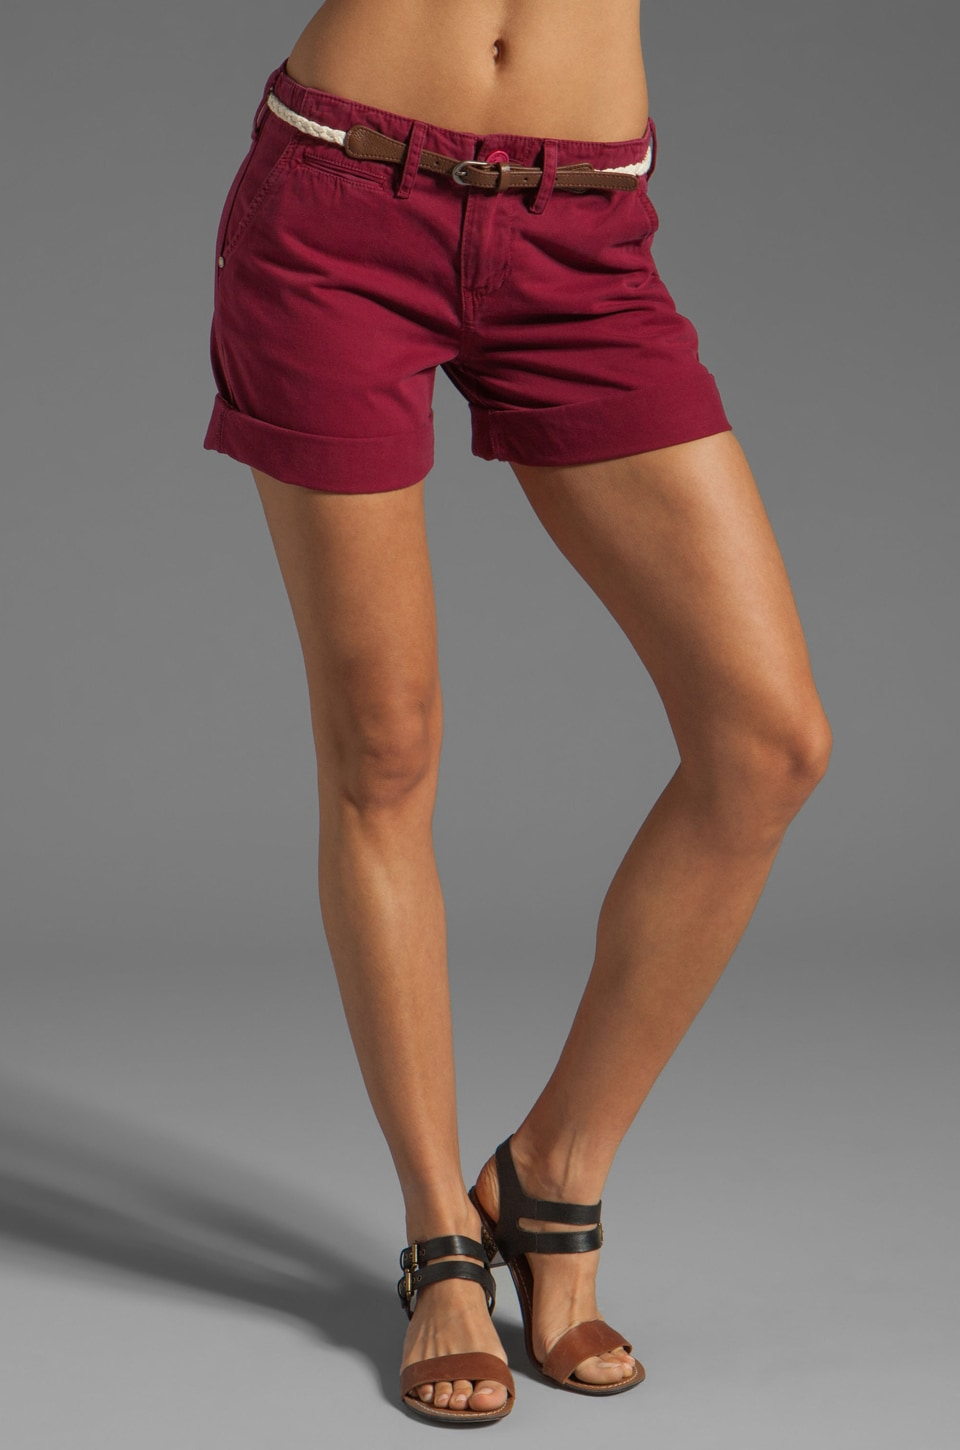 Sanctuary Liberty Roll Short with Belt in Burgundy